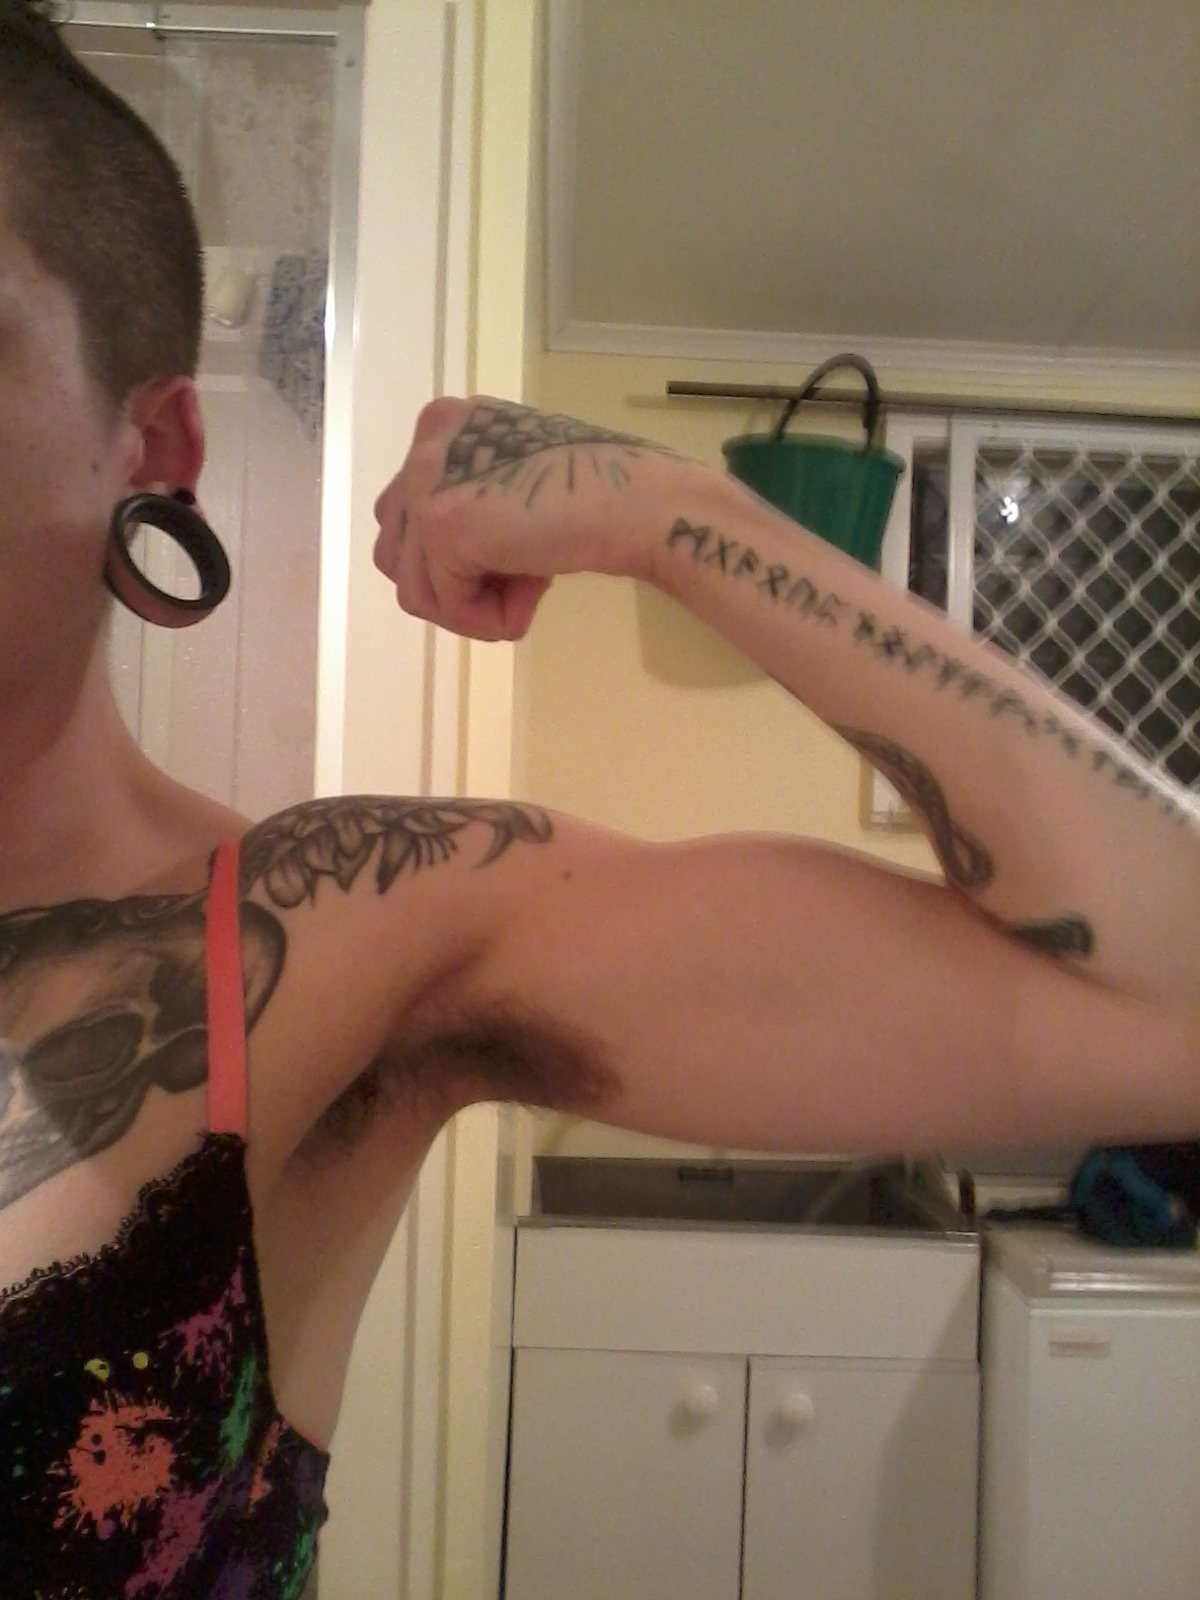 hairypitsclub:  Hairy pits plus bicep progress!